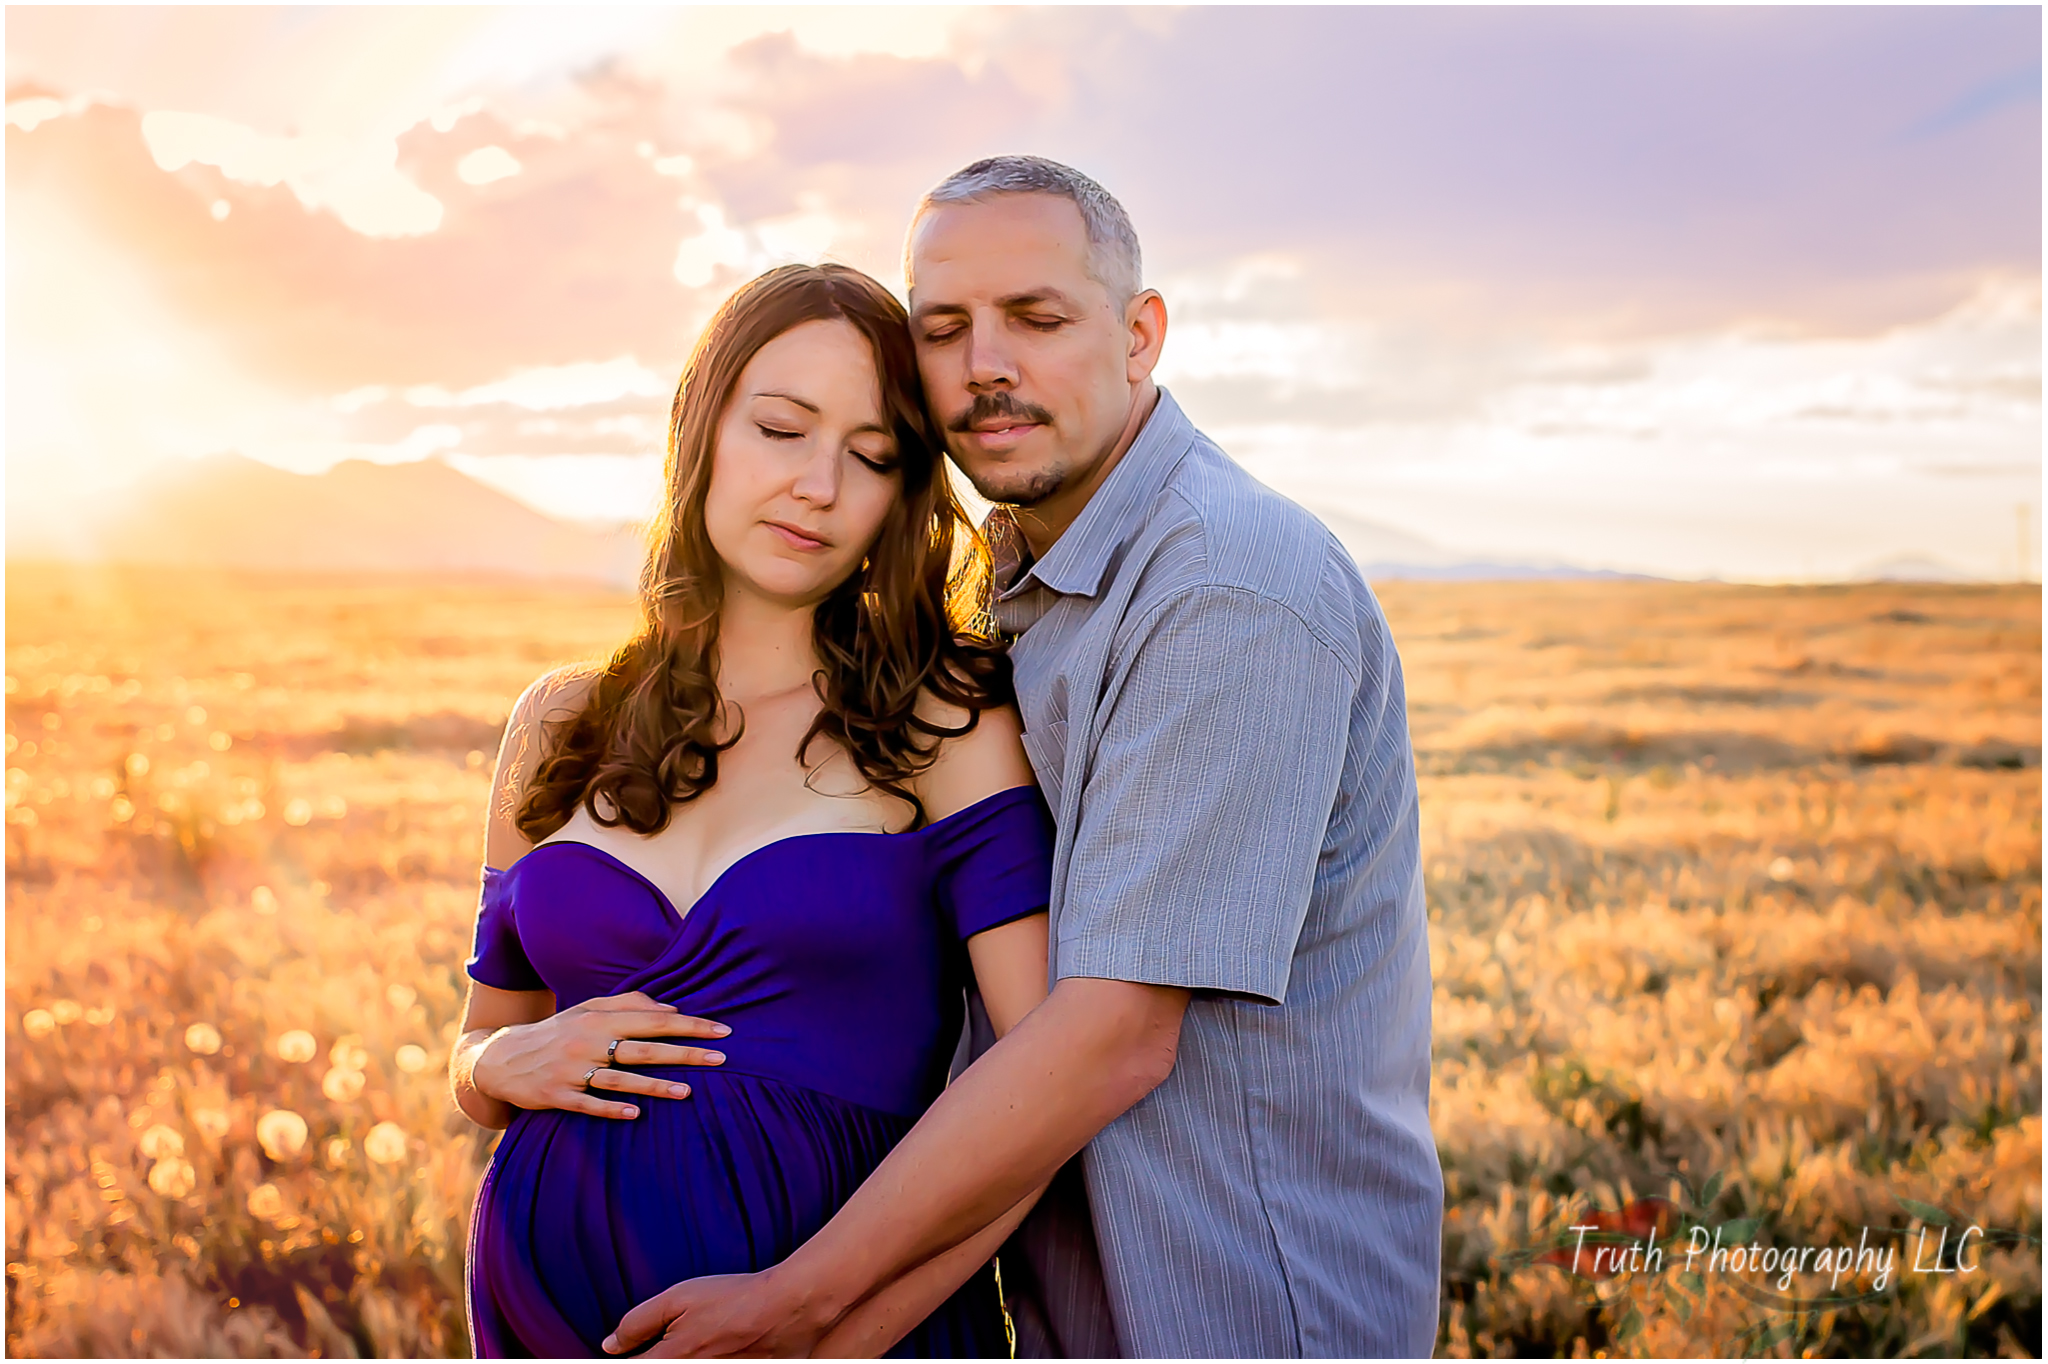 Northglenn-pregnancy-portraits.jpg